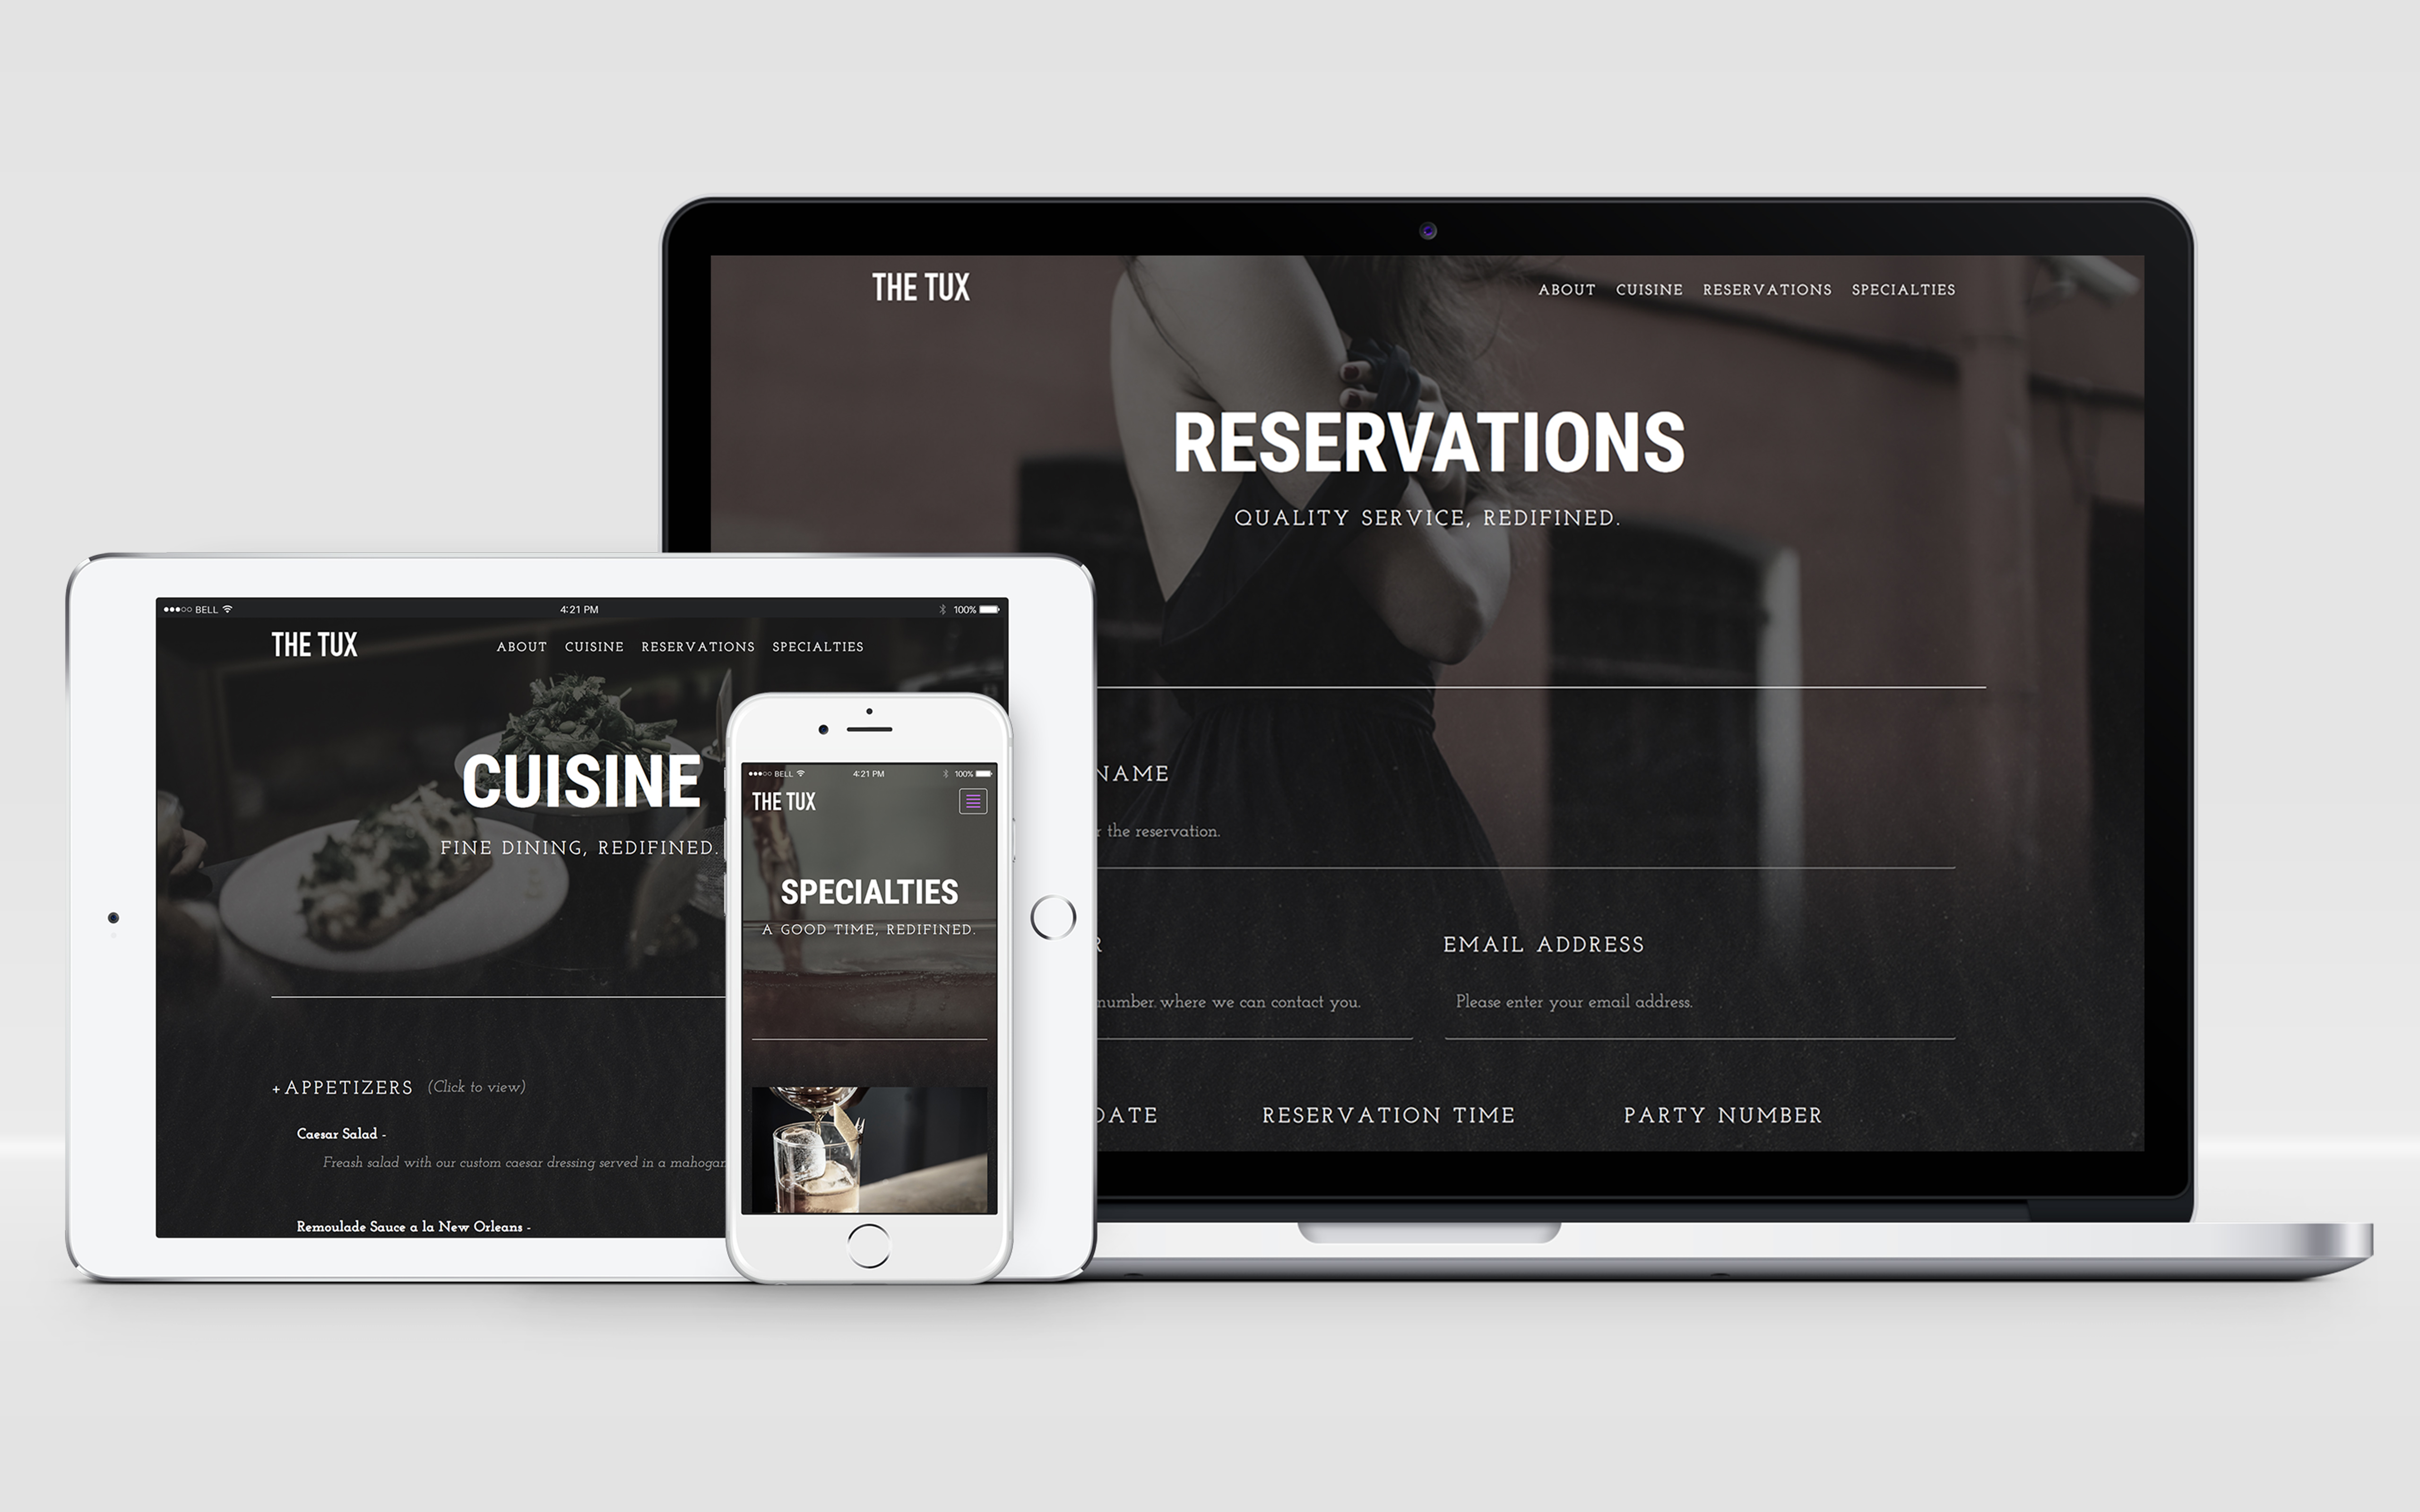 Resturant website design and branding